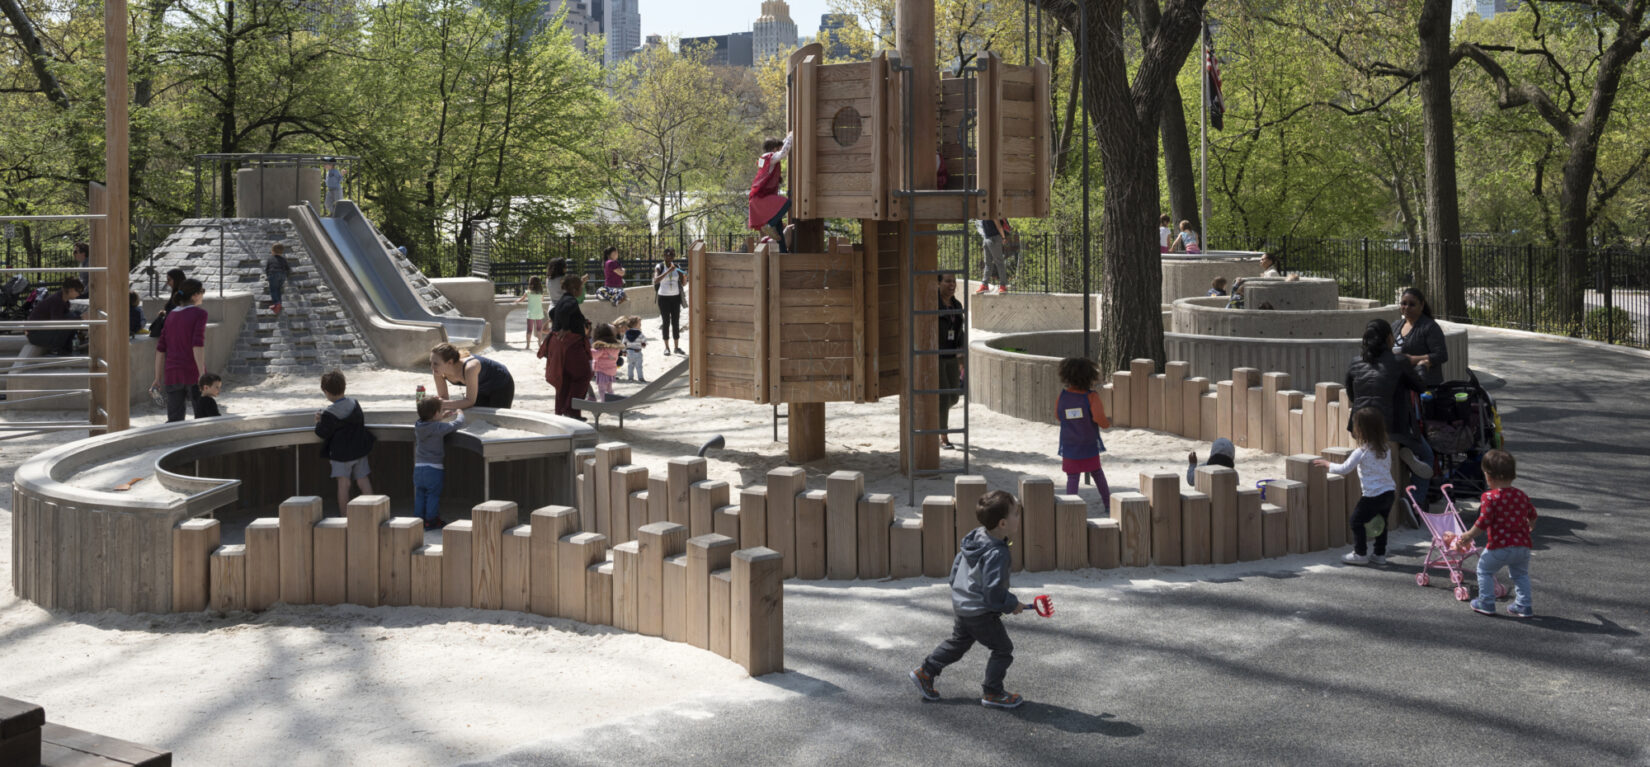 Small children playing on a crisp spring day in Adventure Playground